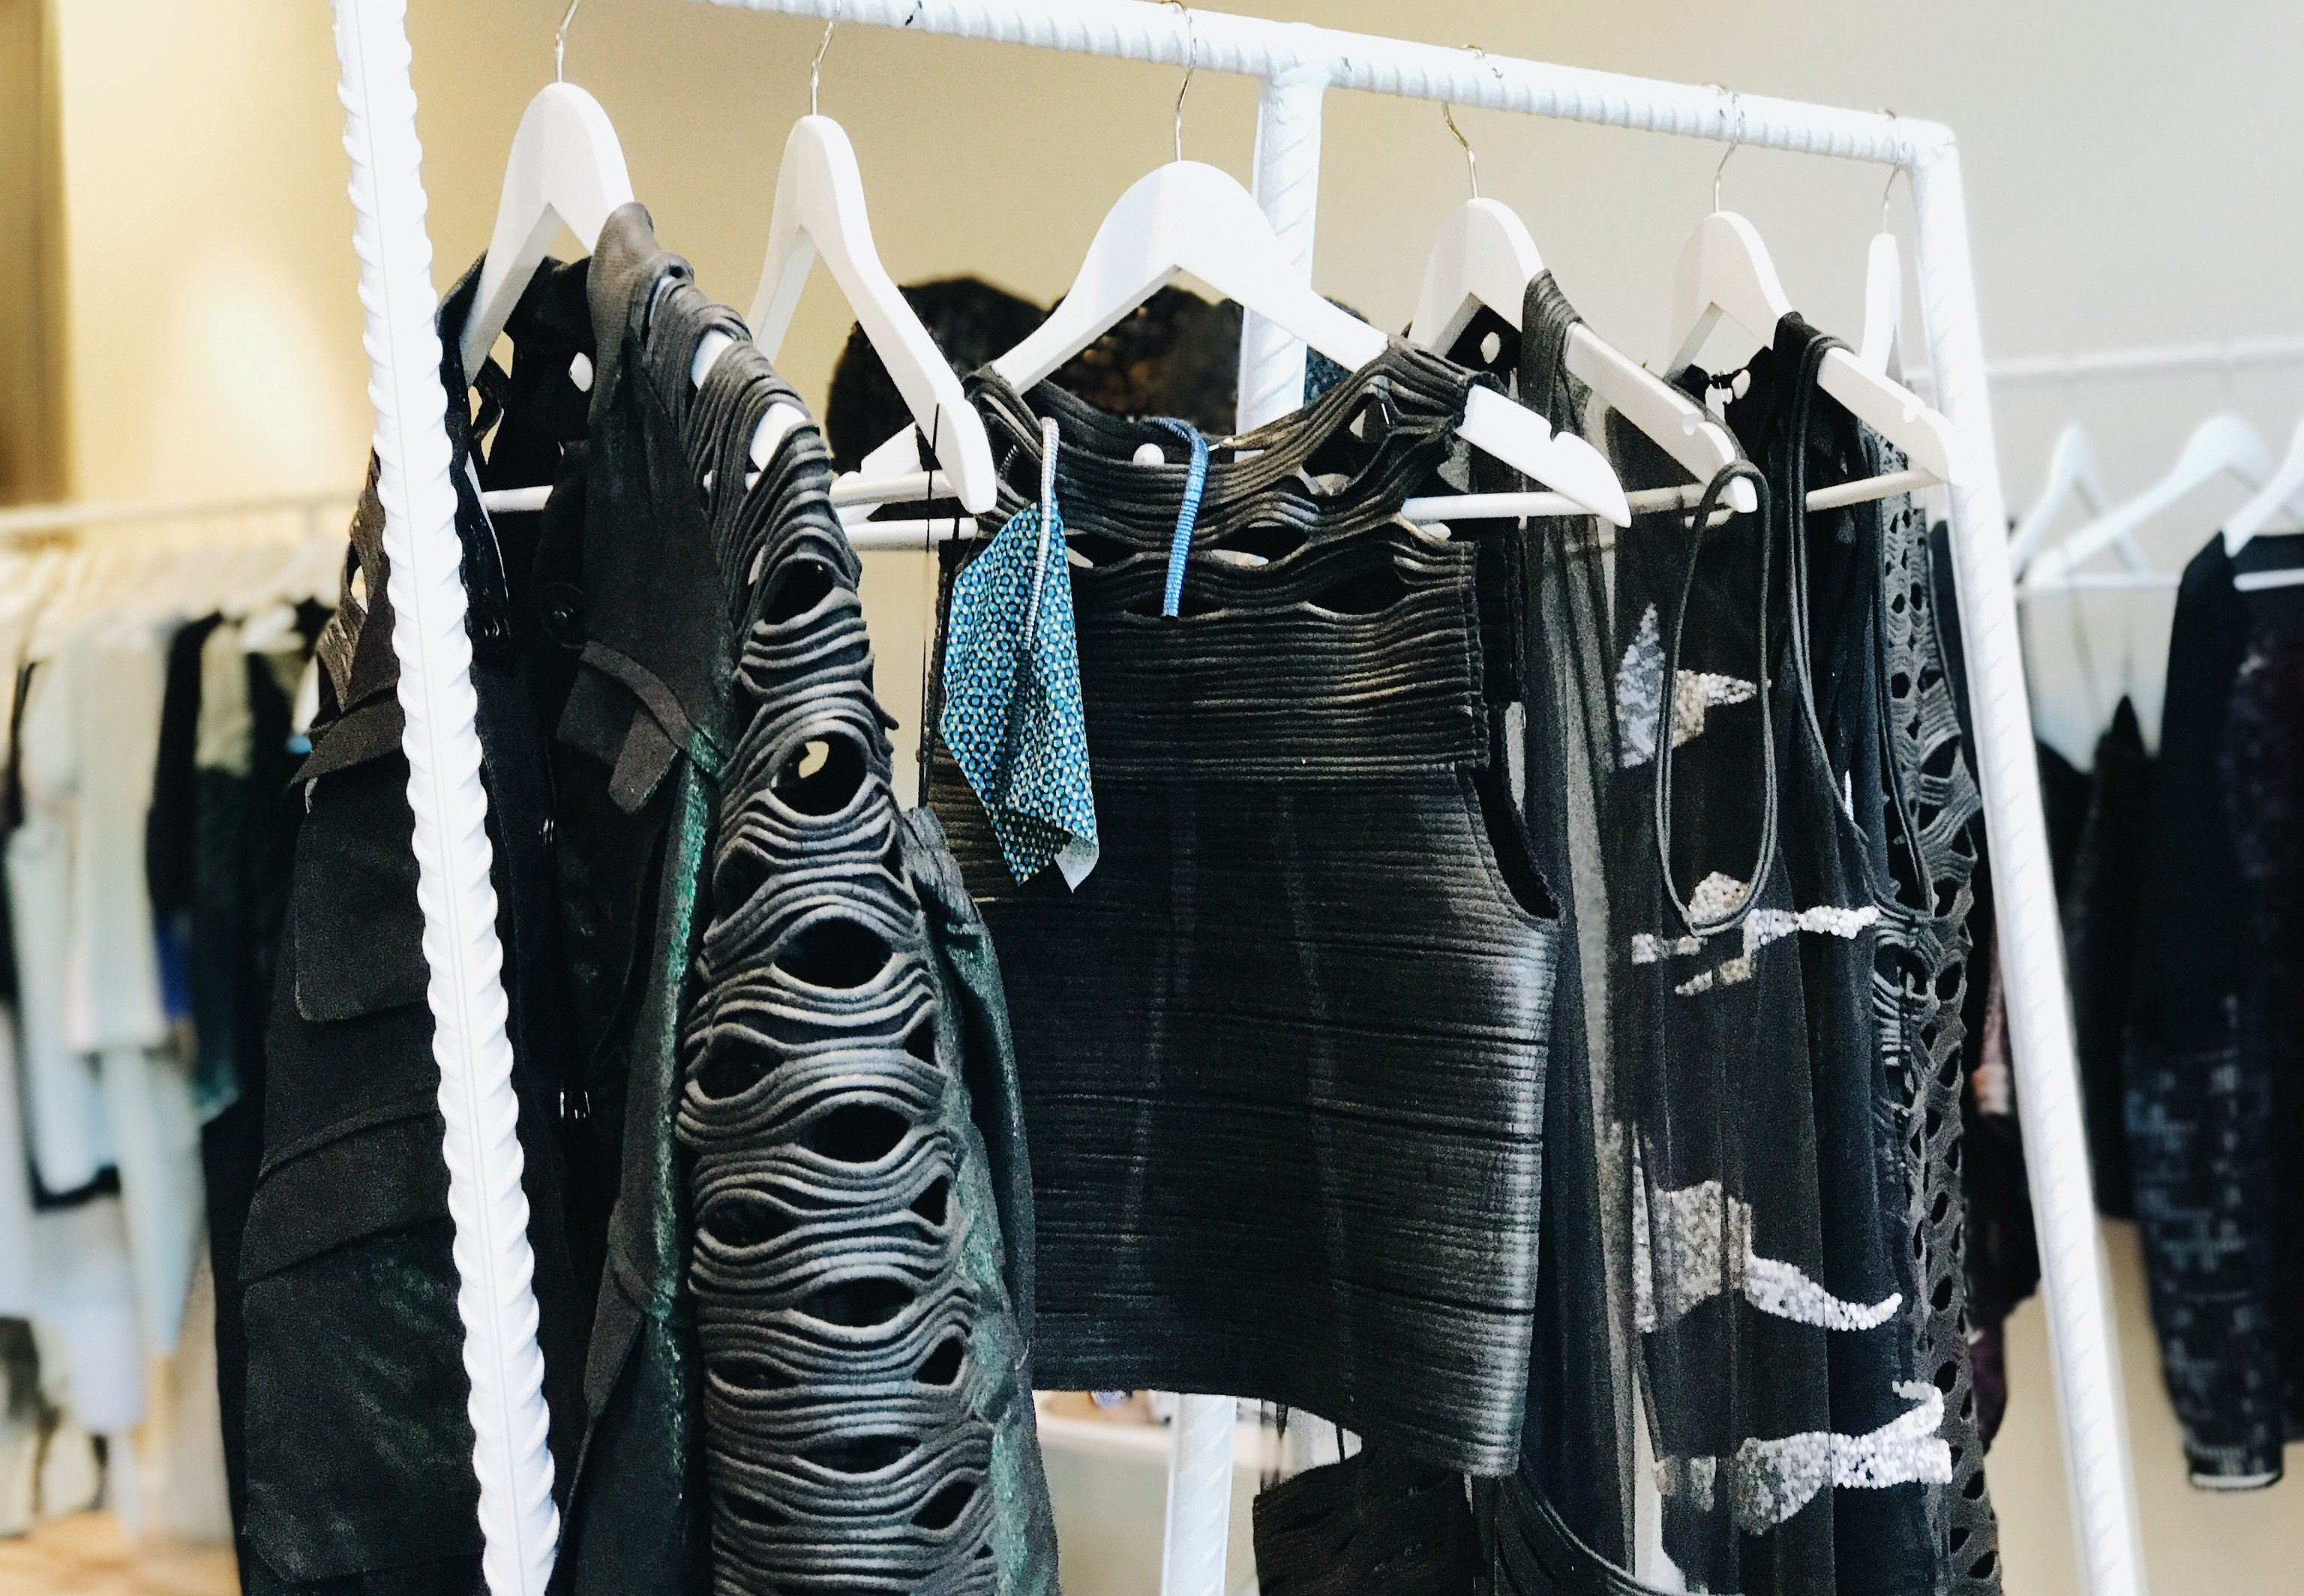 Trip Ideas indoor black clothing room footwear Boutique fashion rack textile leather